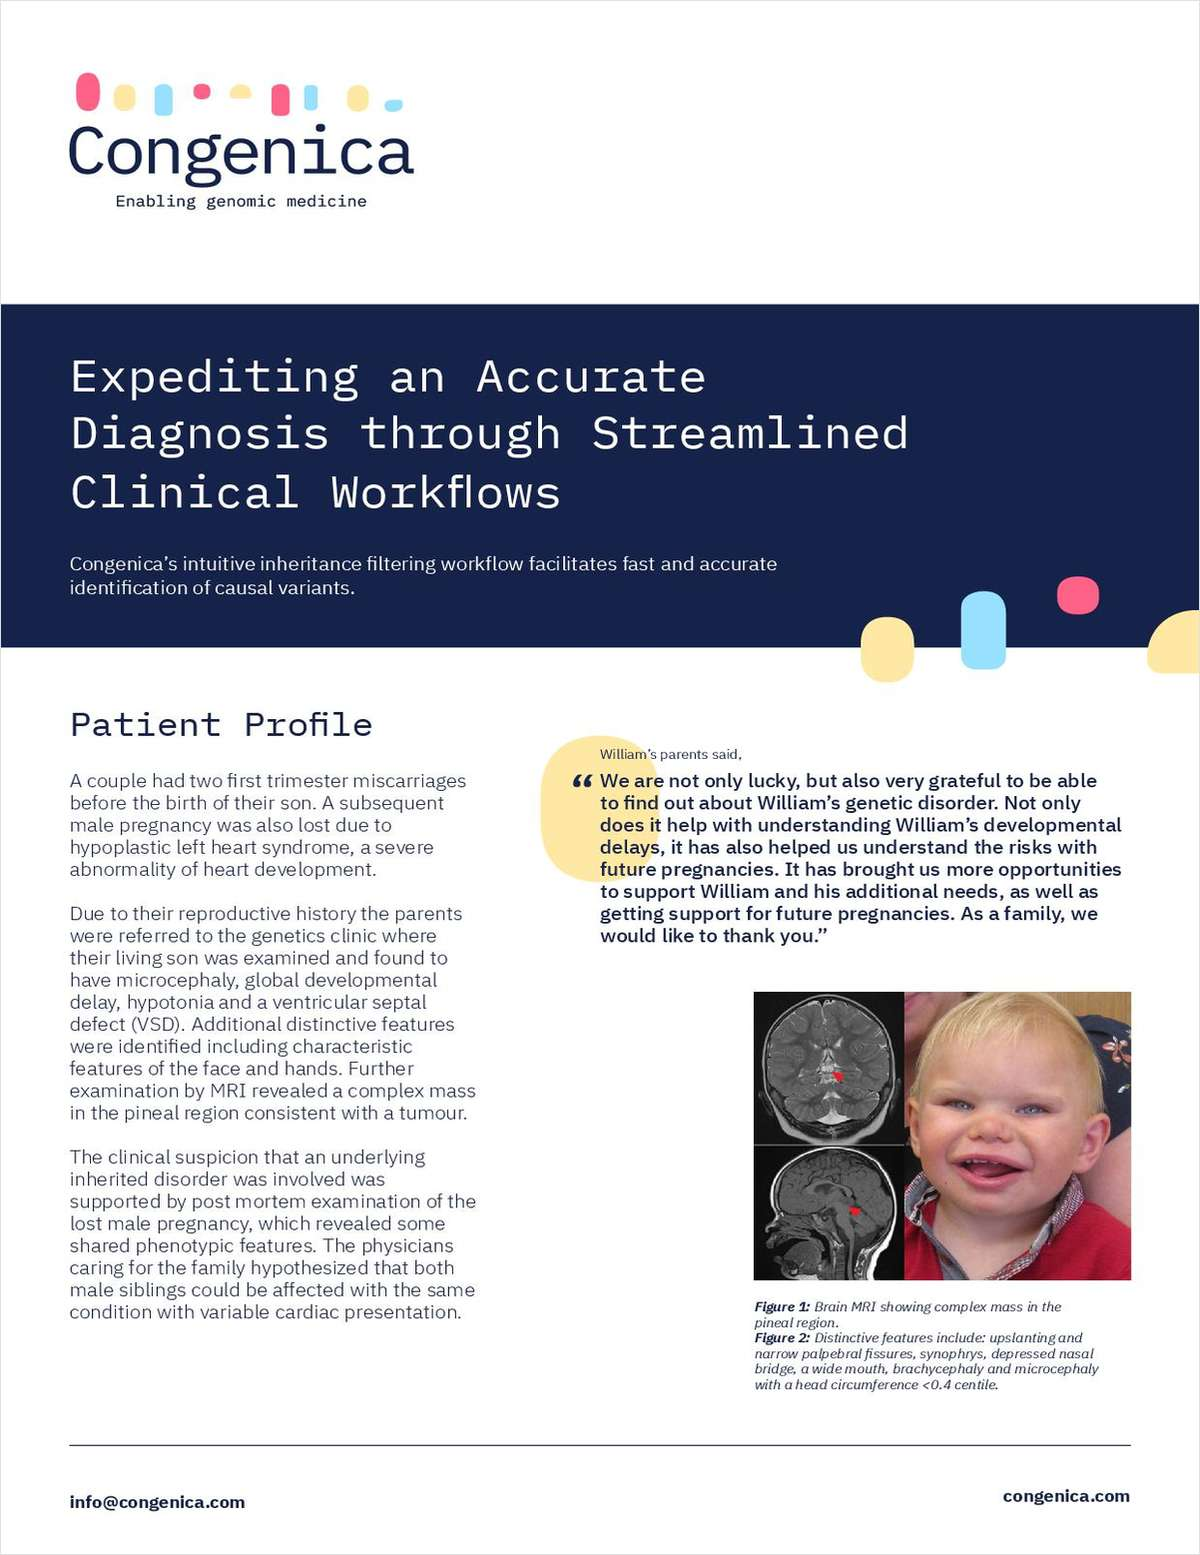 Expediting an Accurate Diagnosis through Streamlined Clinical Workflows